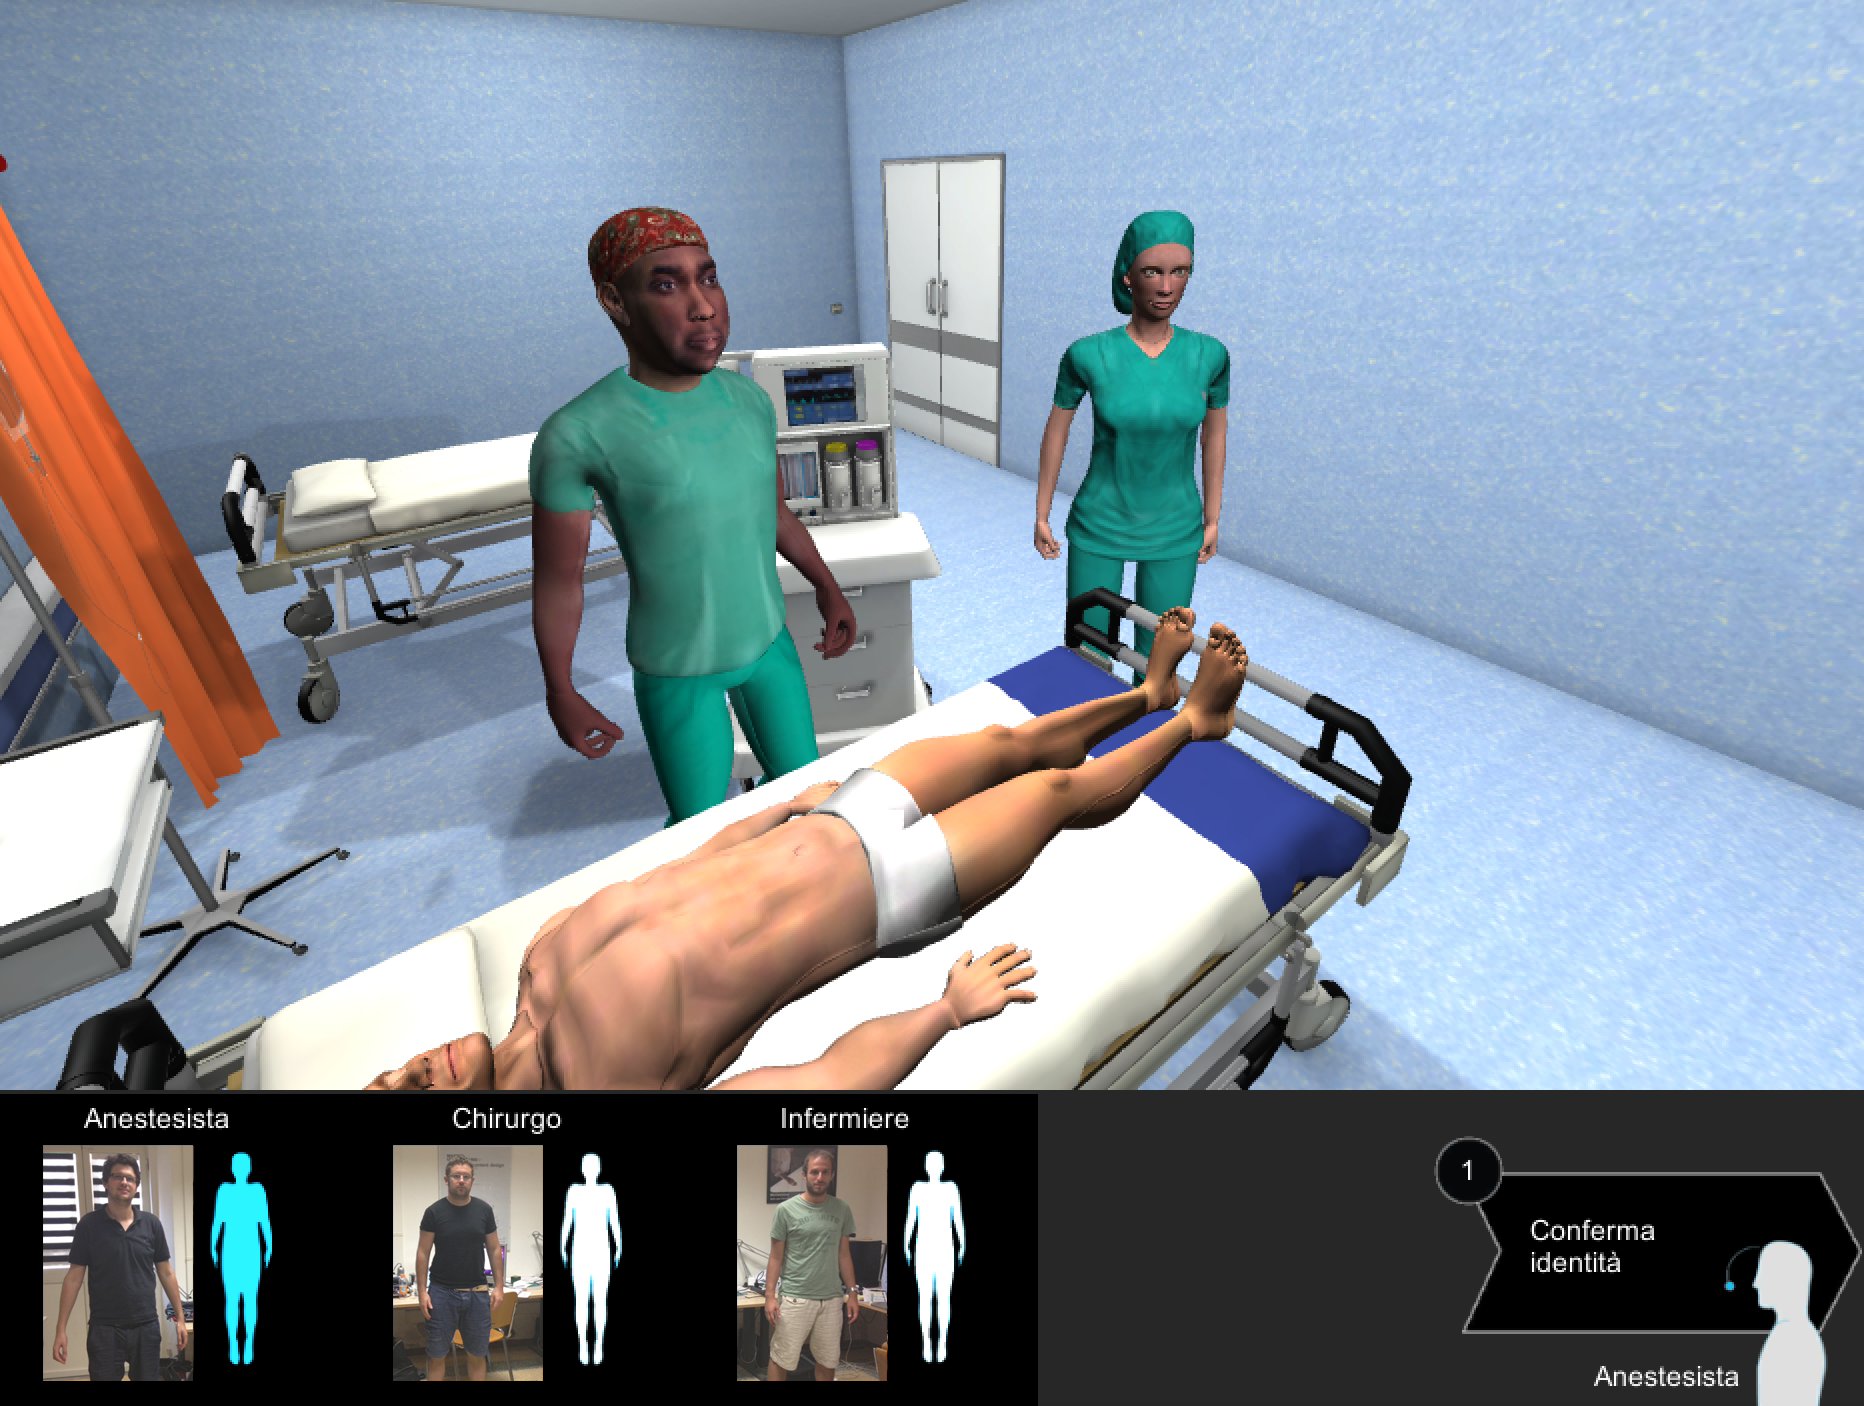 The medical team in the operating room